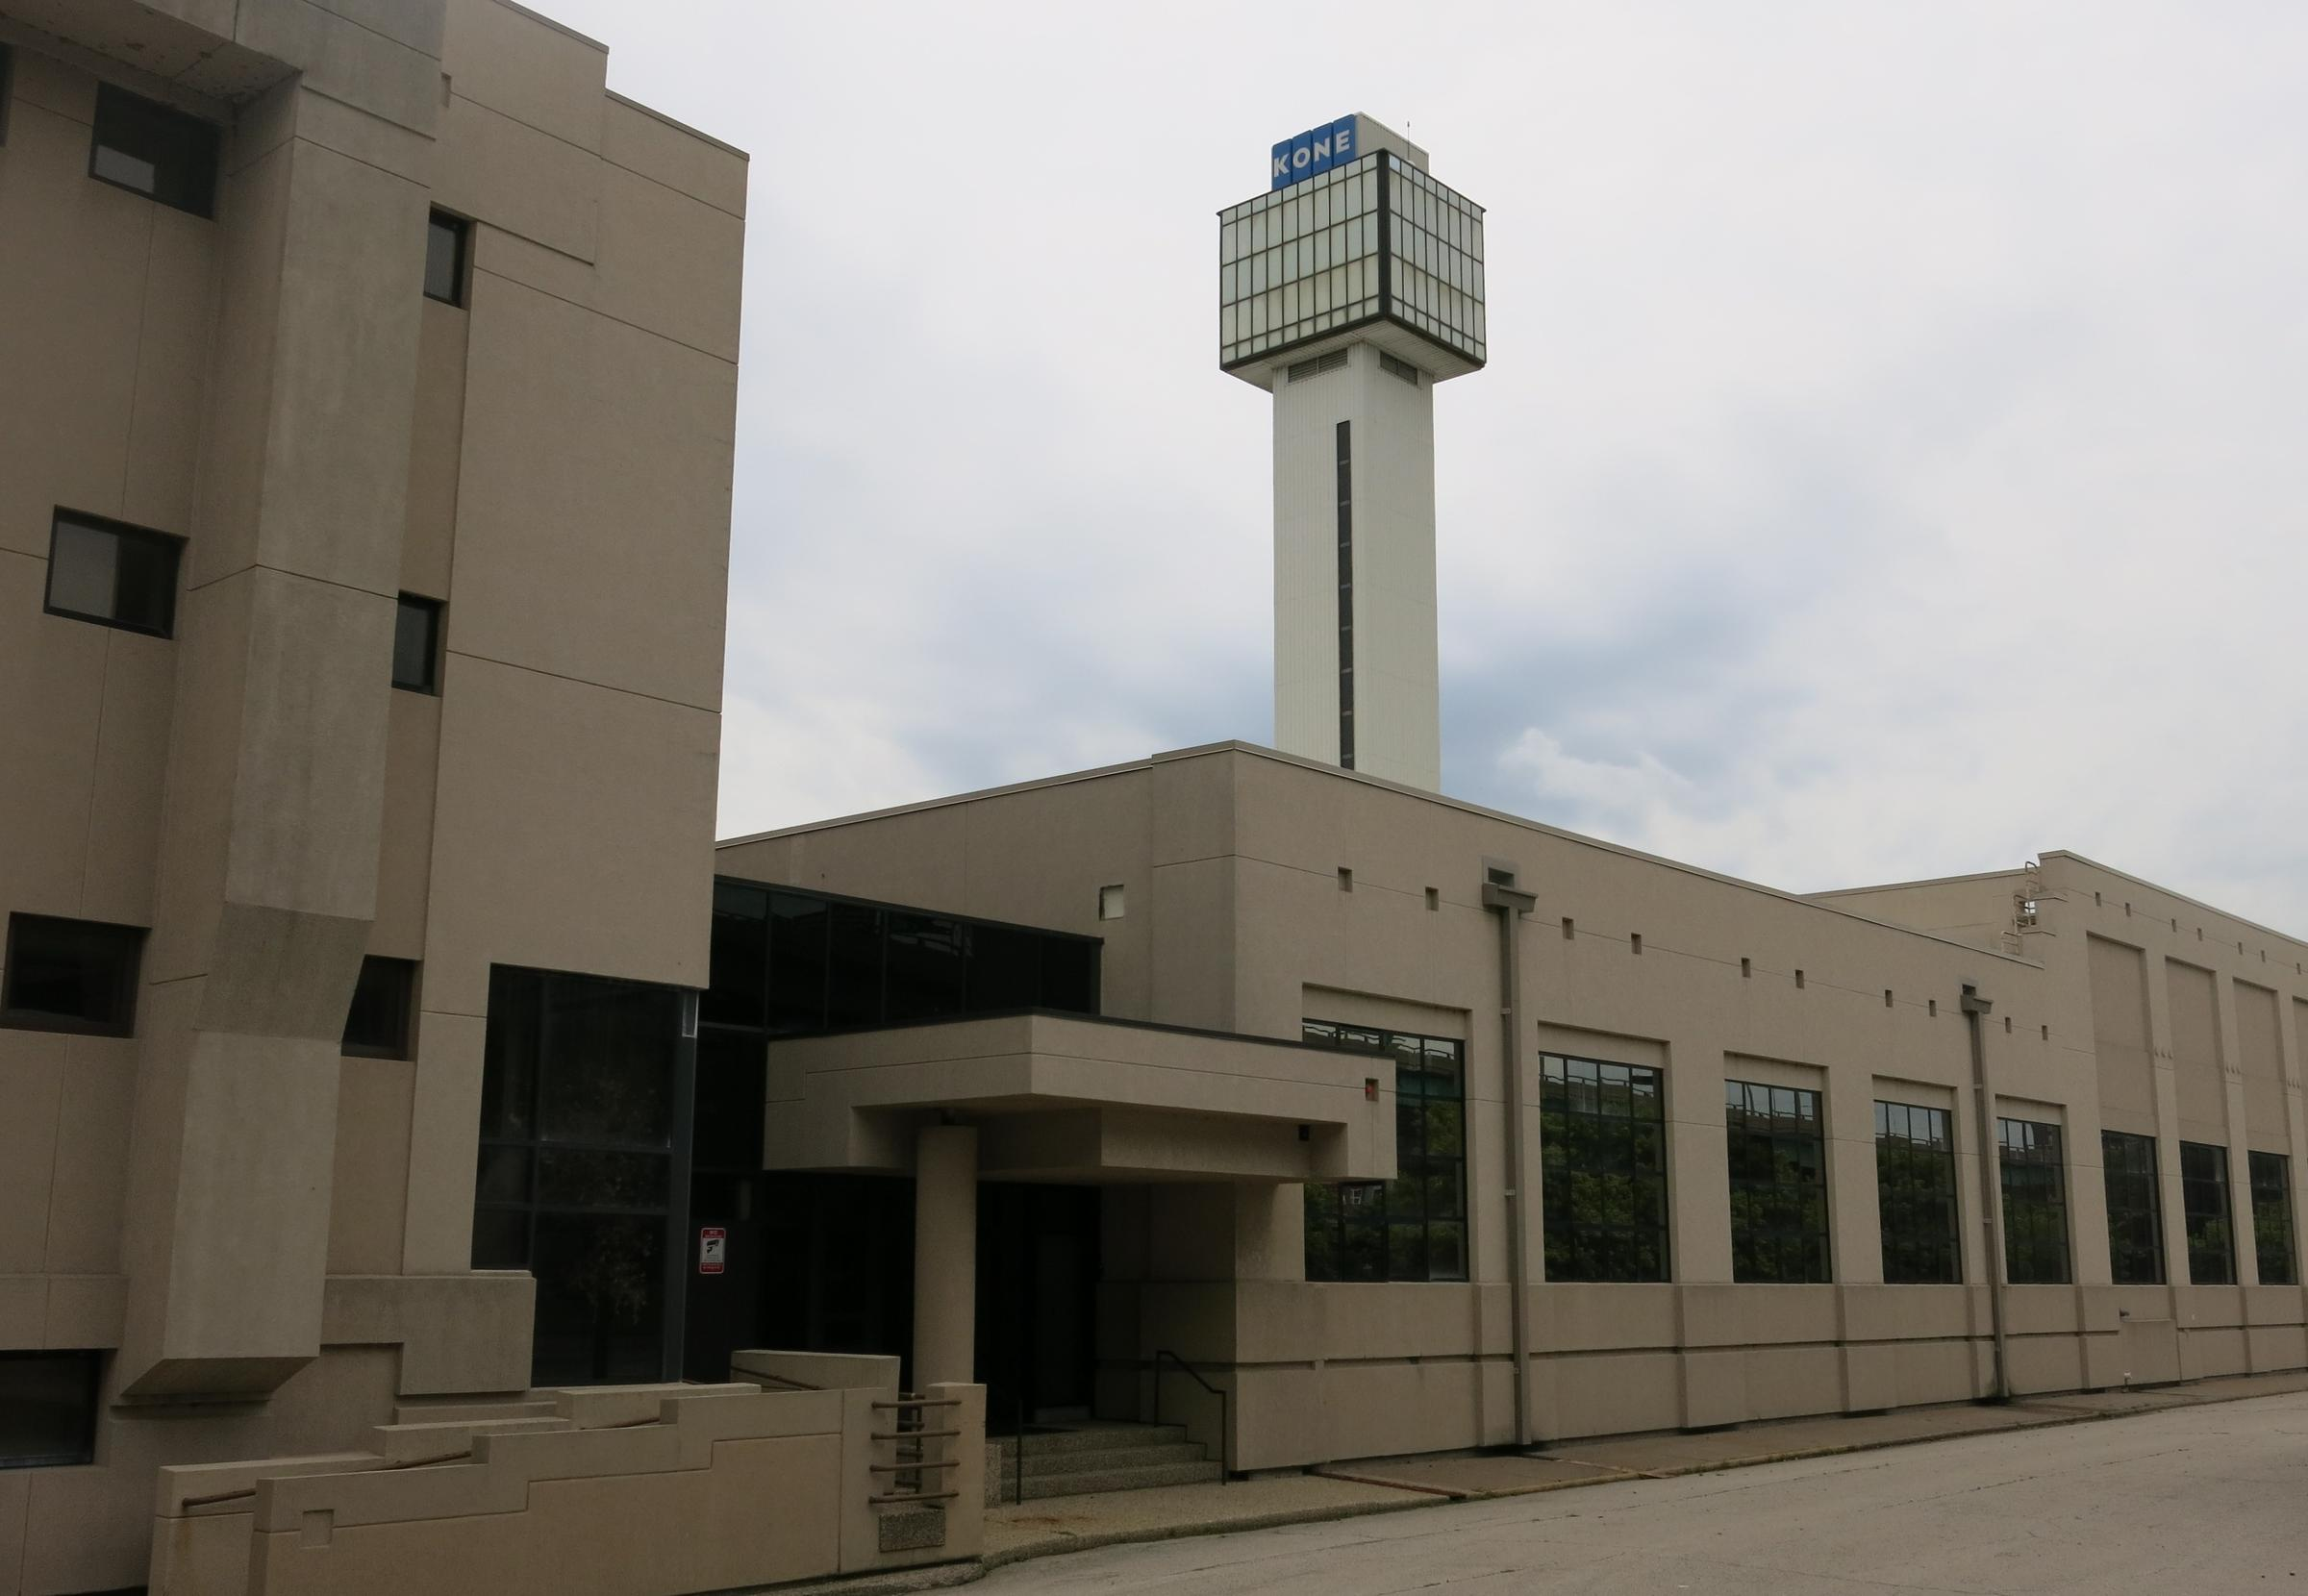 Church's Plans for the Kone Building | WVIK